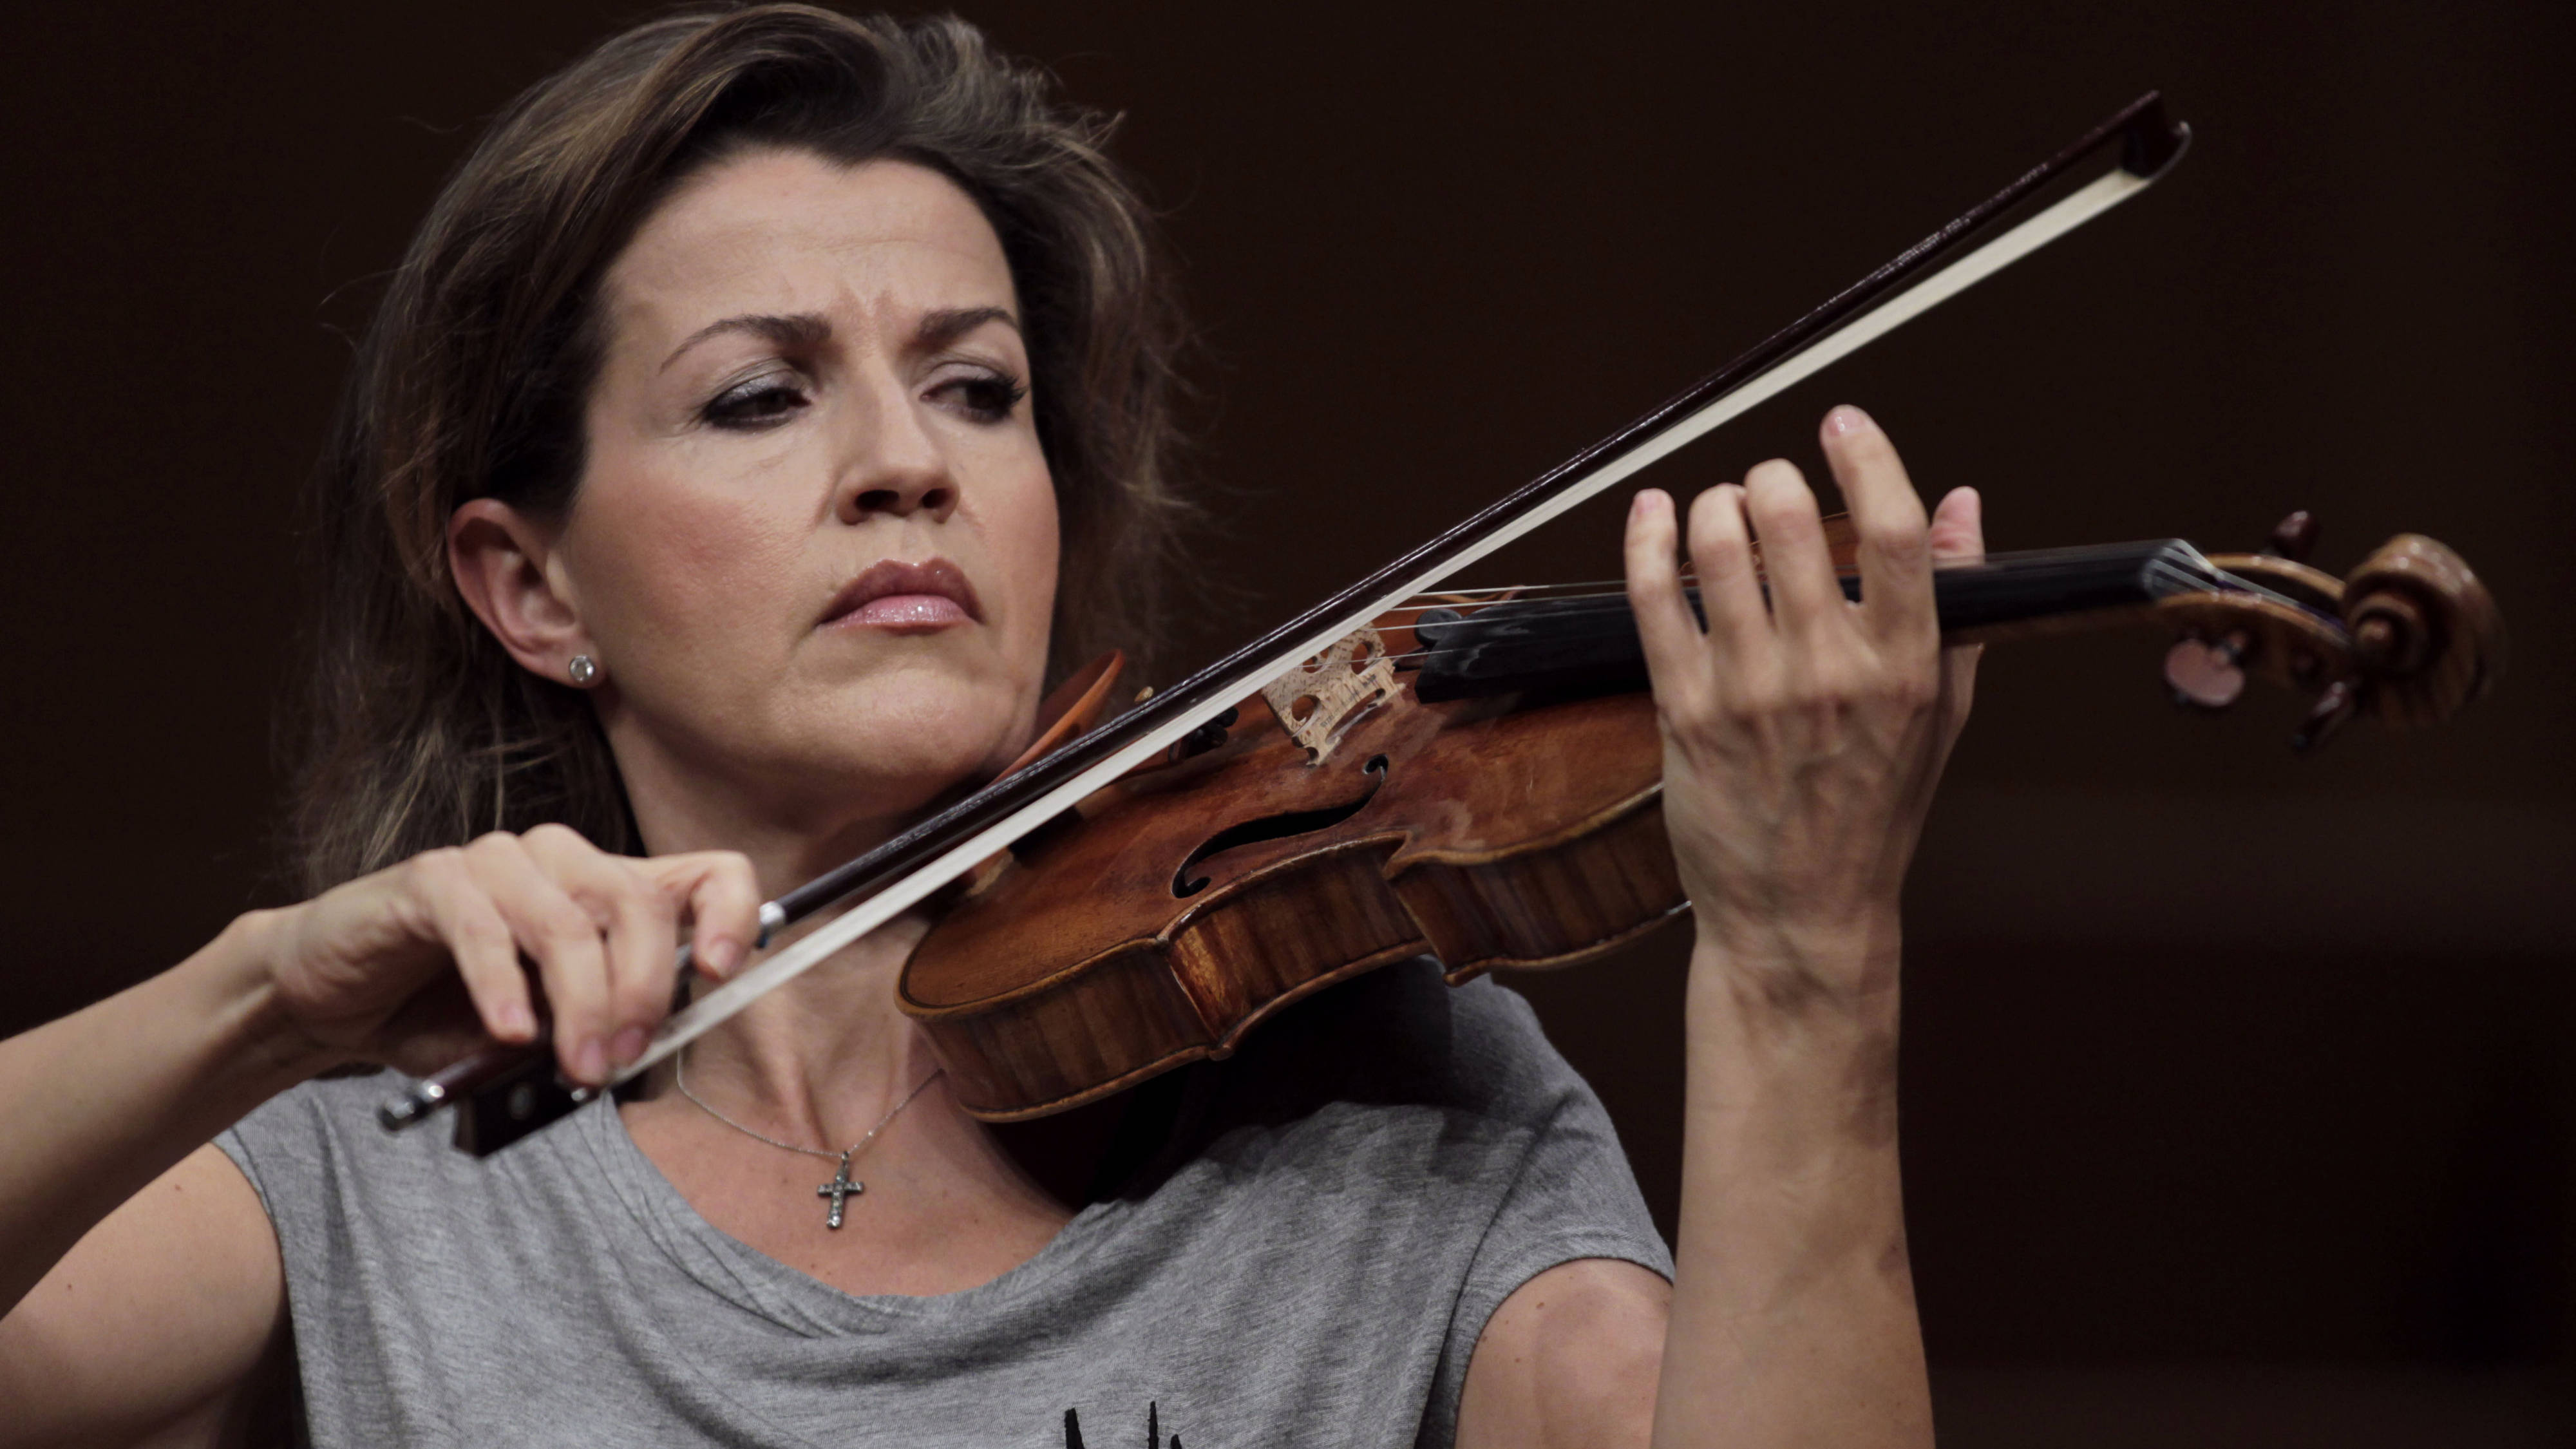 Anne-Sophie Mutter breaks silence on filming incident, saying 'I felt violated'